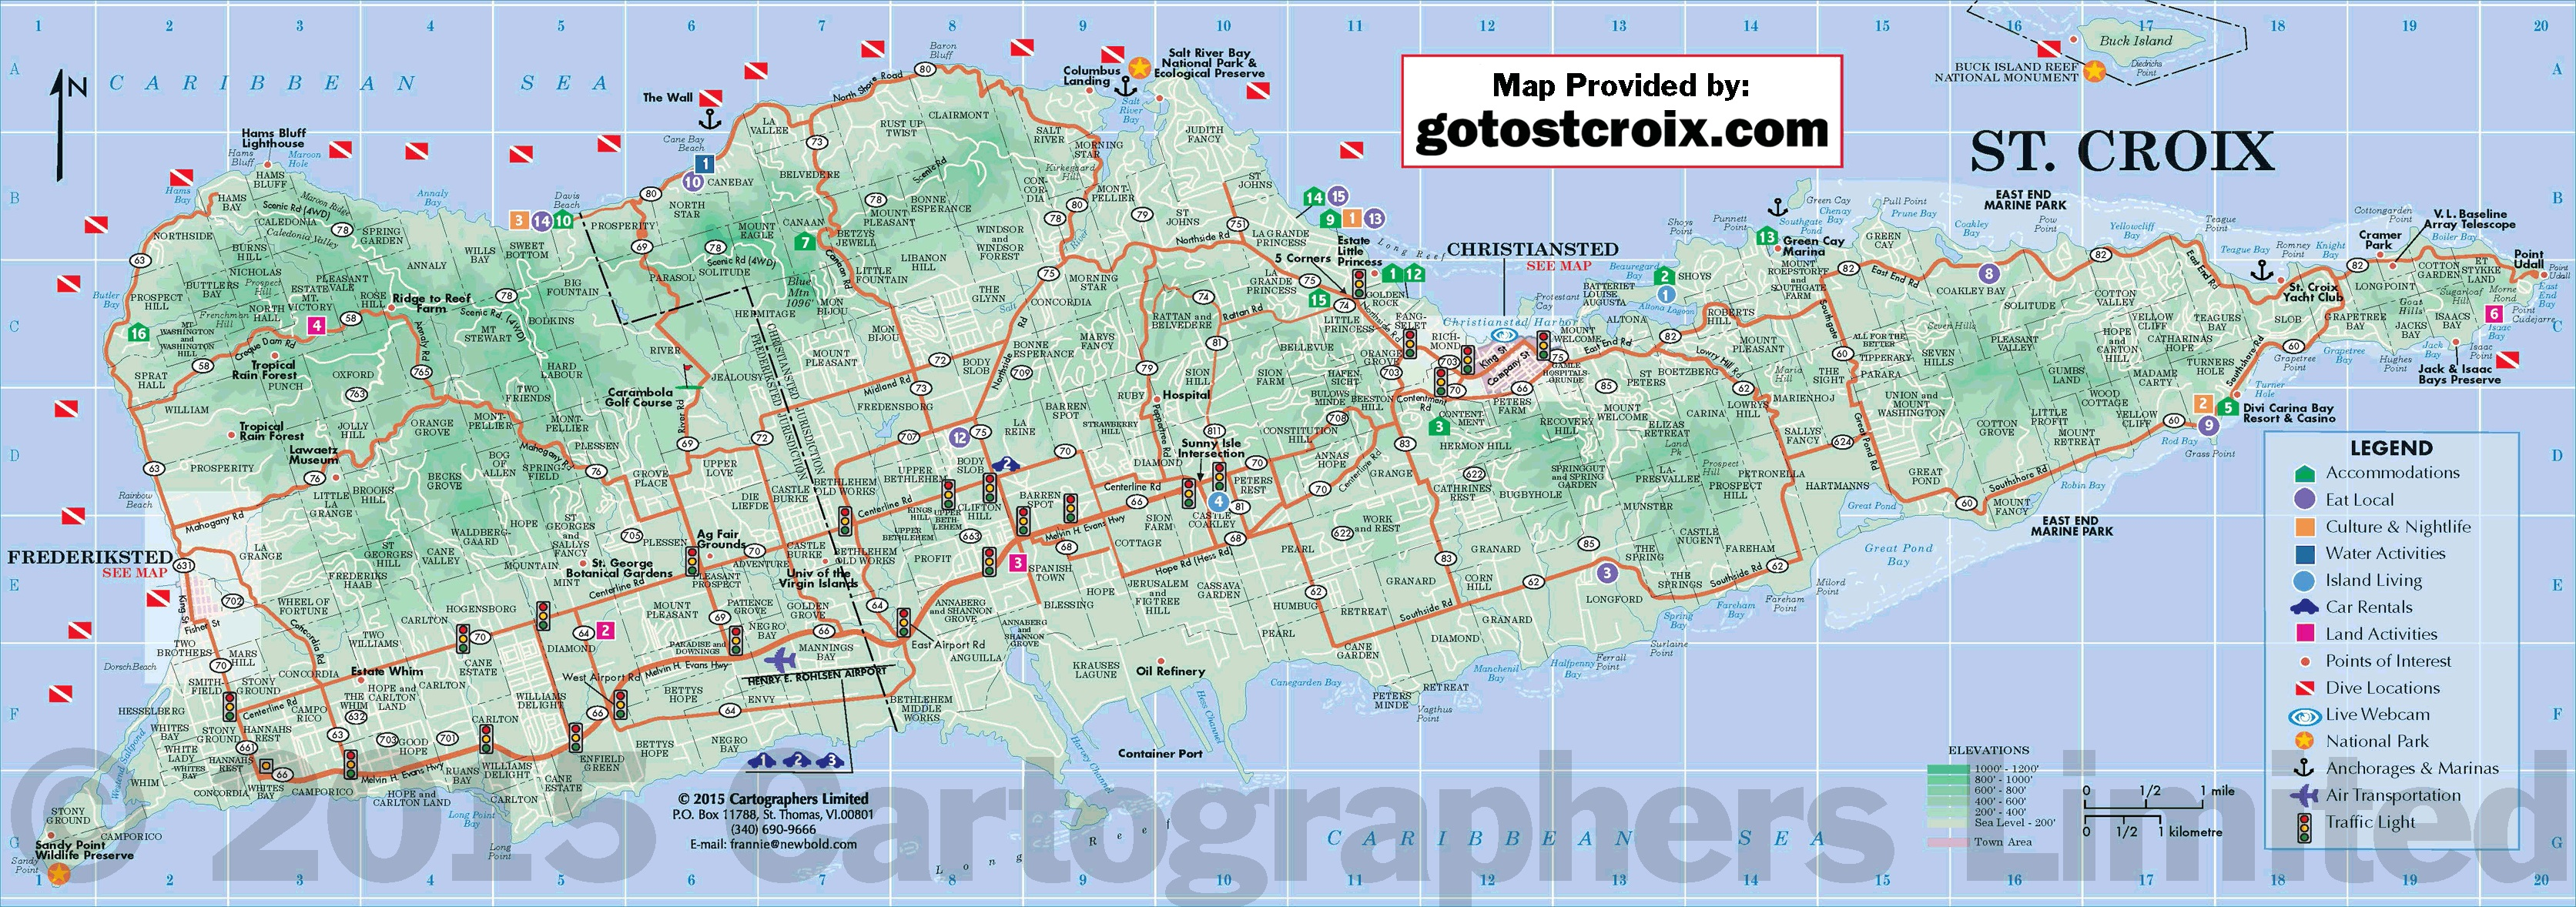 St Croix Map US Virgin Islands Map Where Is St Croix - Us virgin islands google maps